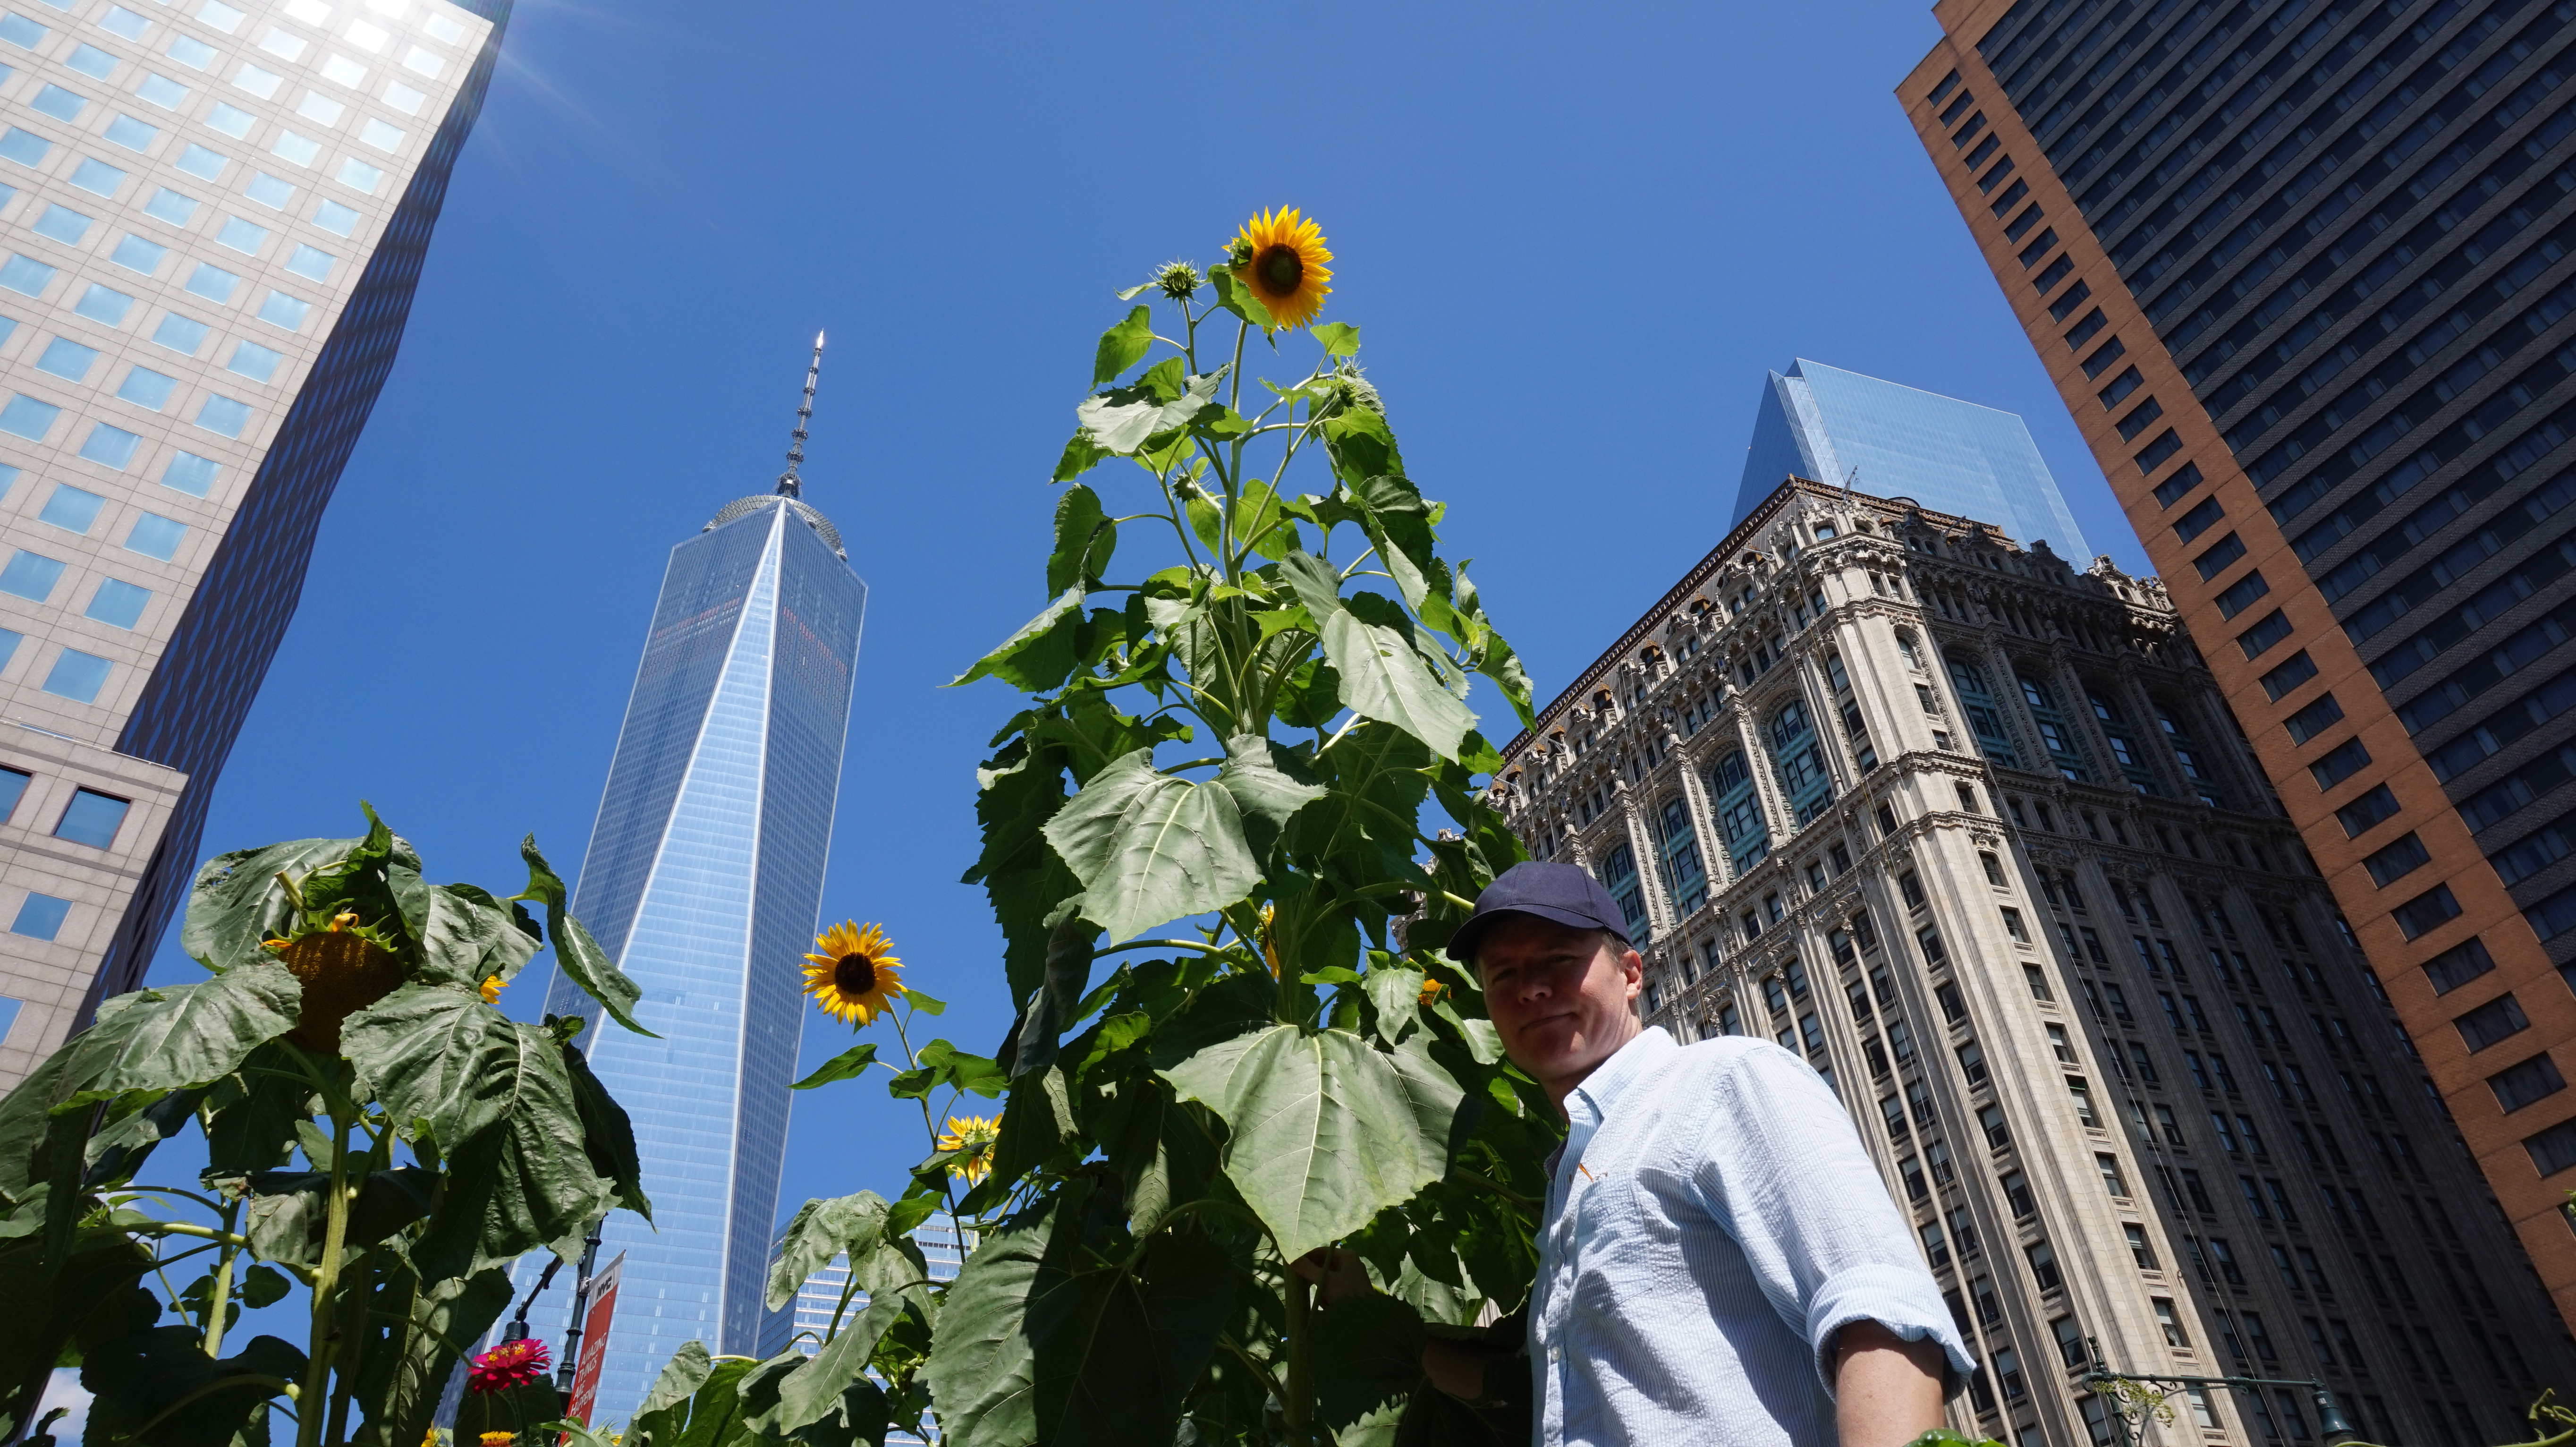 Me-and-sunflower-looking-up-8-25-2014-low